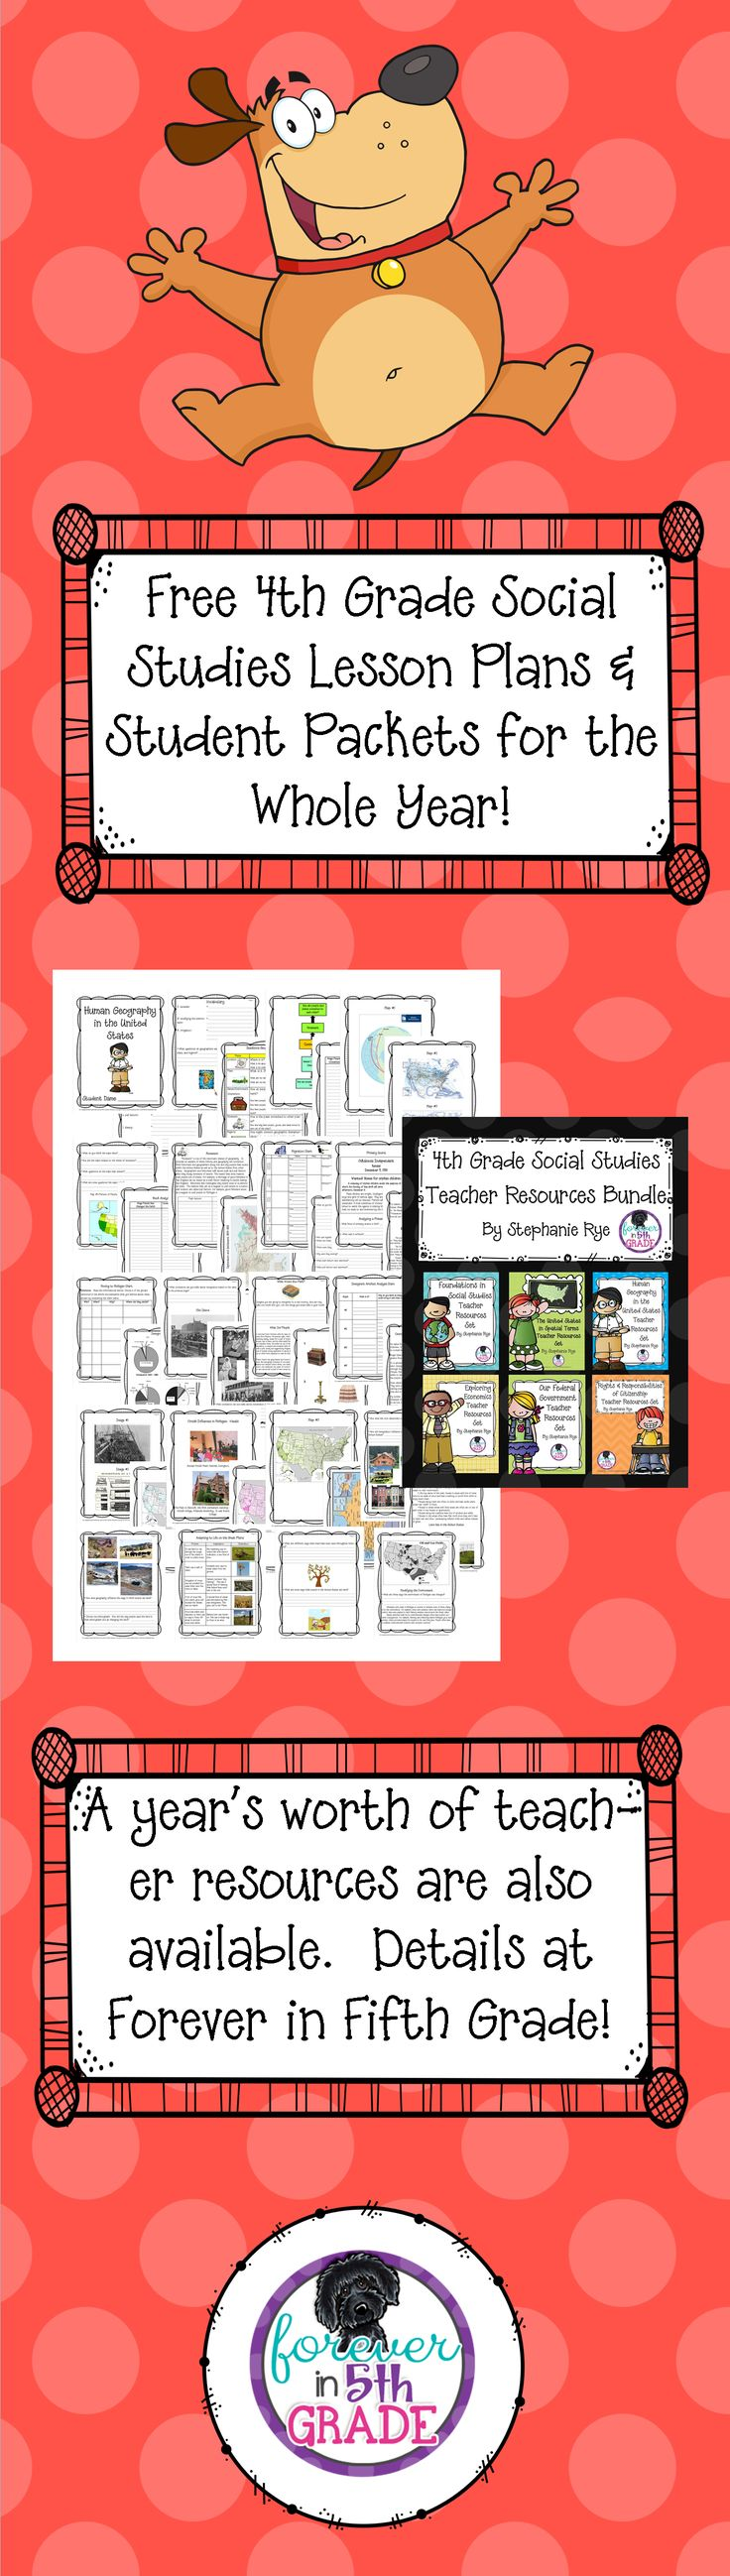 Free 4th Grade Social Studies Lesson Plans and Student Packets for the Whole Year!  Details at Forever in Fifth Grade!